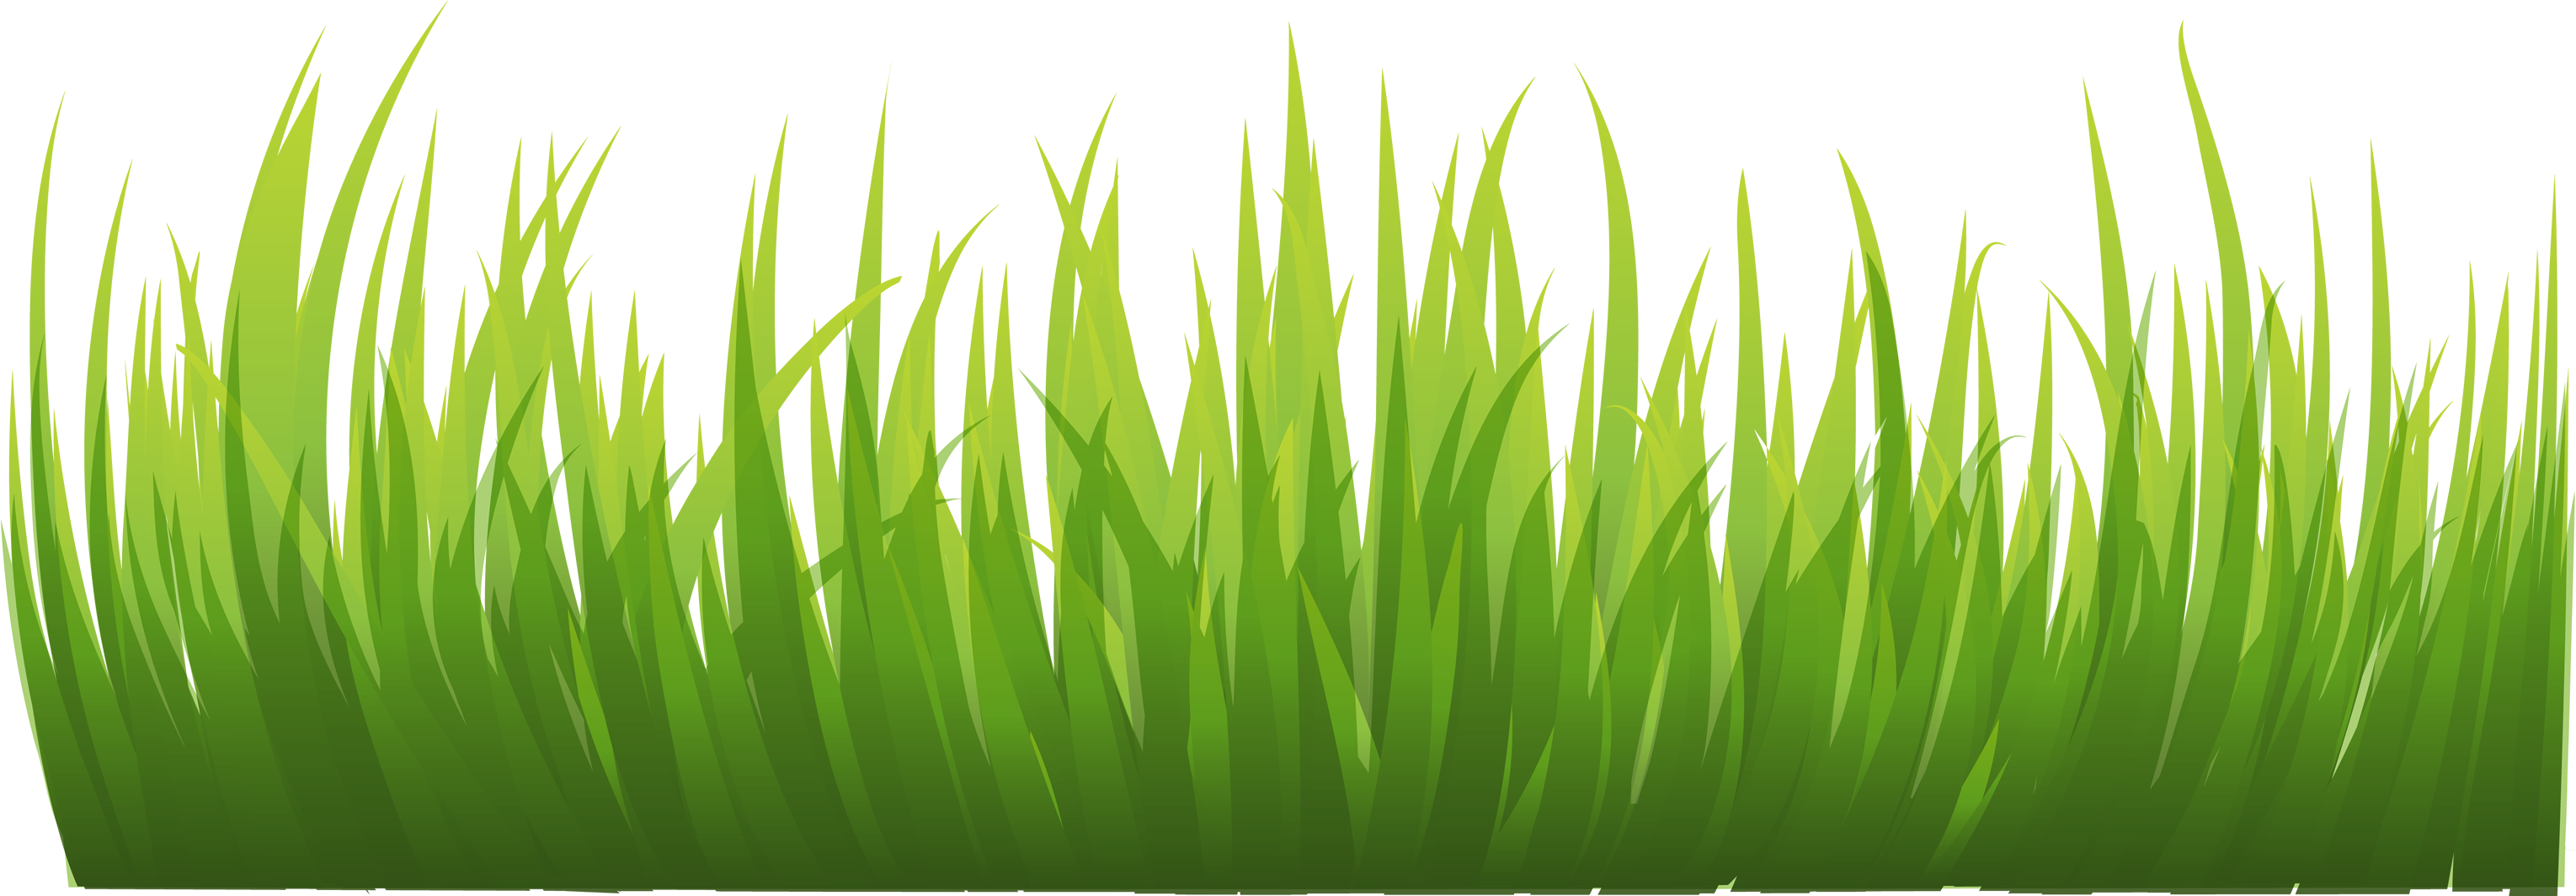 grass png image, green grass png picture